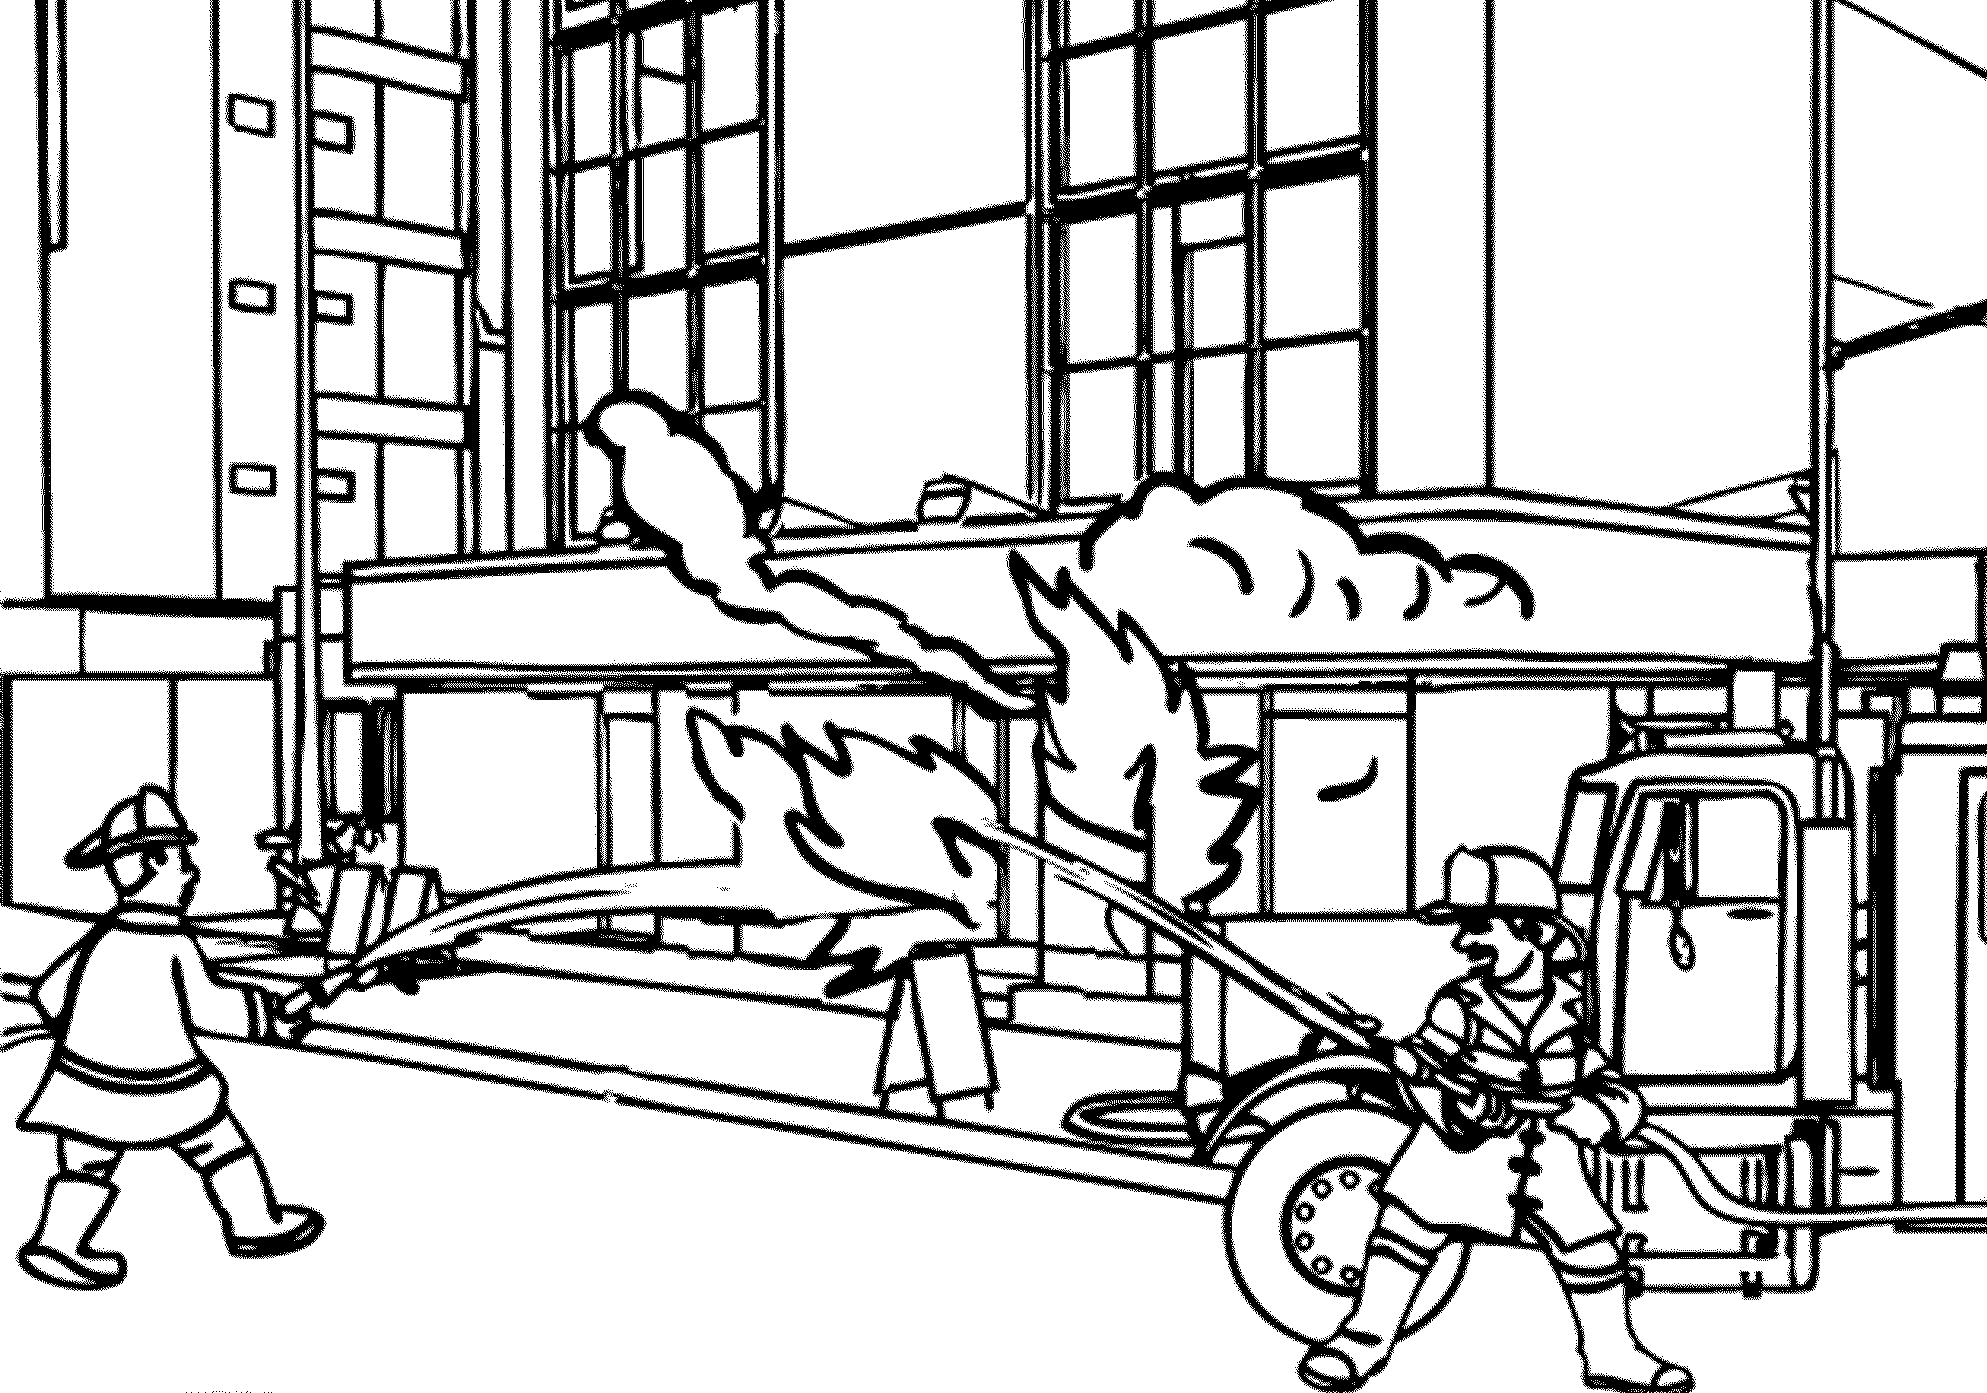 free fire truck coloring pages to print free printable fire truck coloring pages for kids free truck coloring pages print to fire